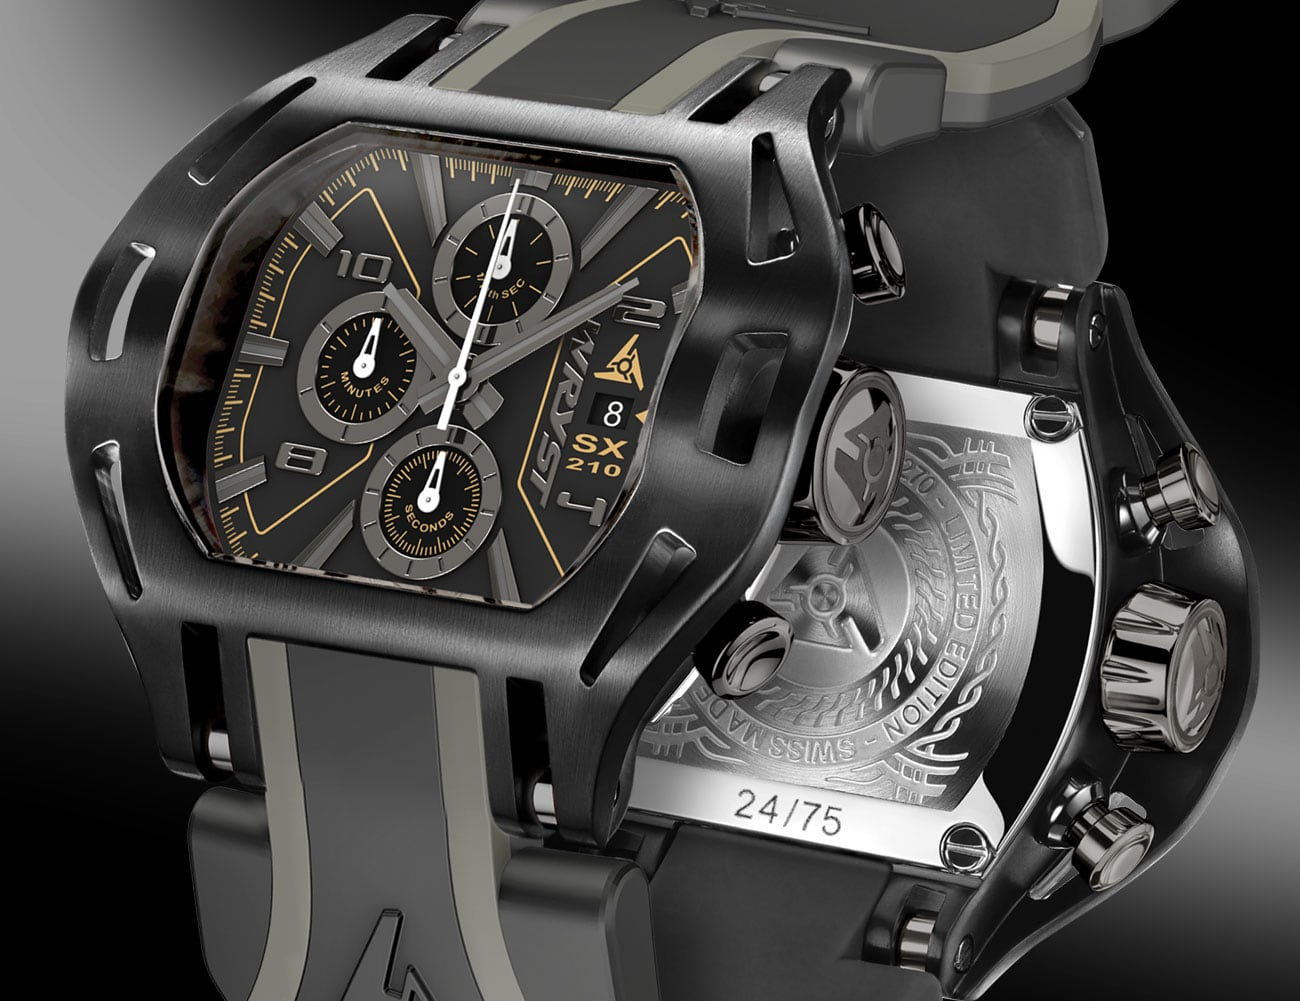 Wryst Force SX210 Limited Edition Swiss Watches